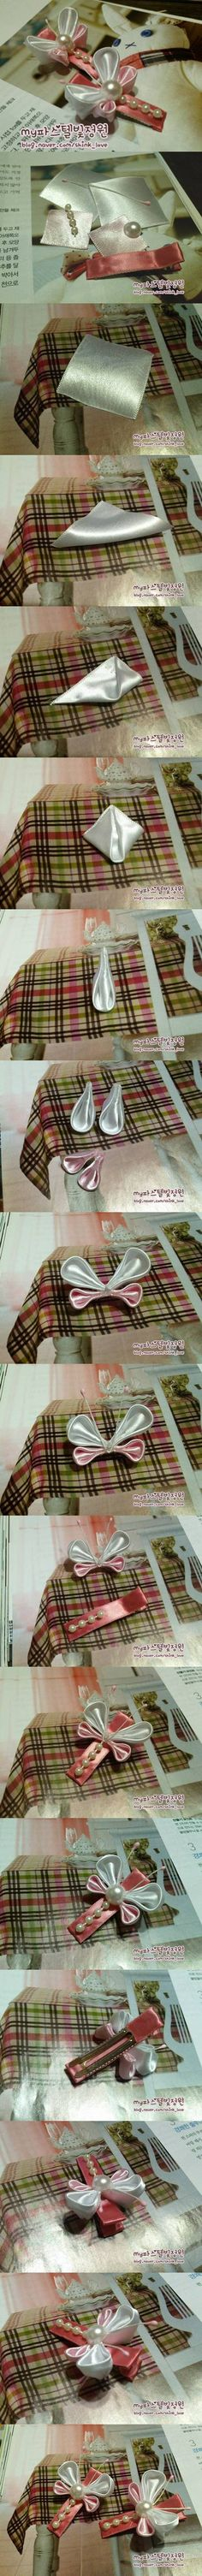 Sewing Ribbon Butterfly